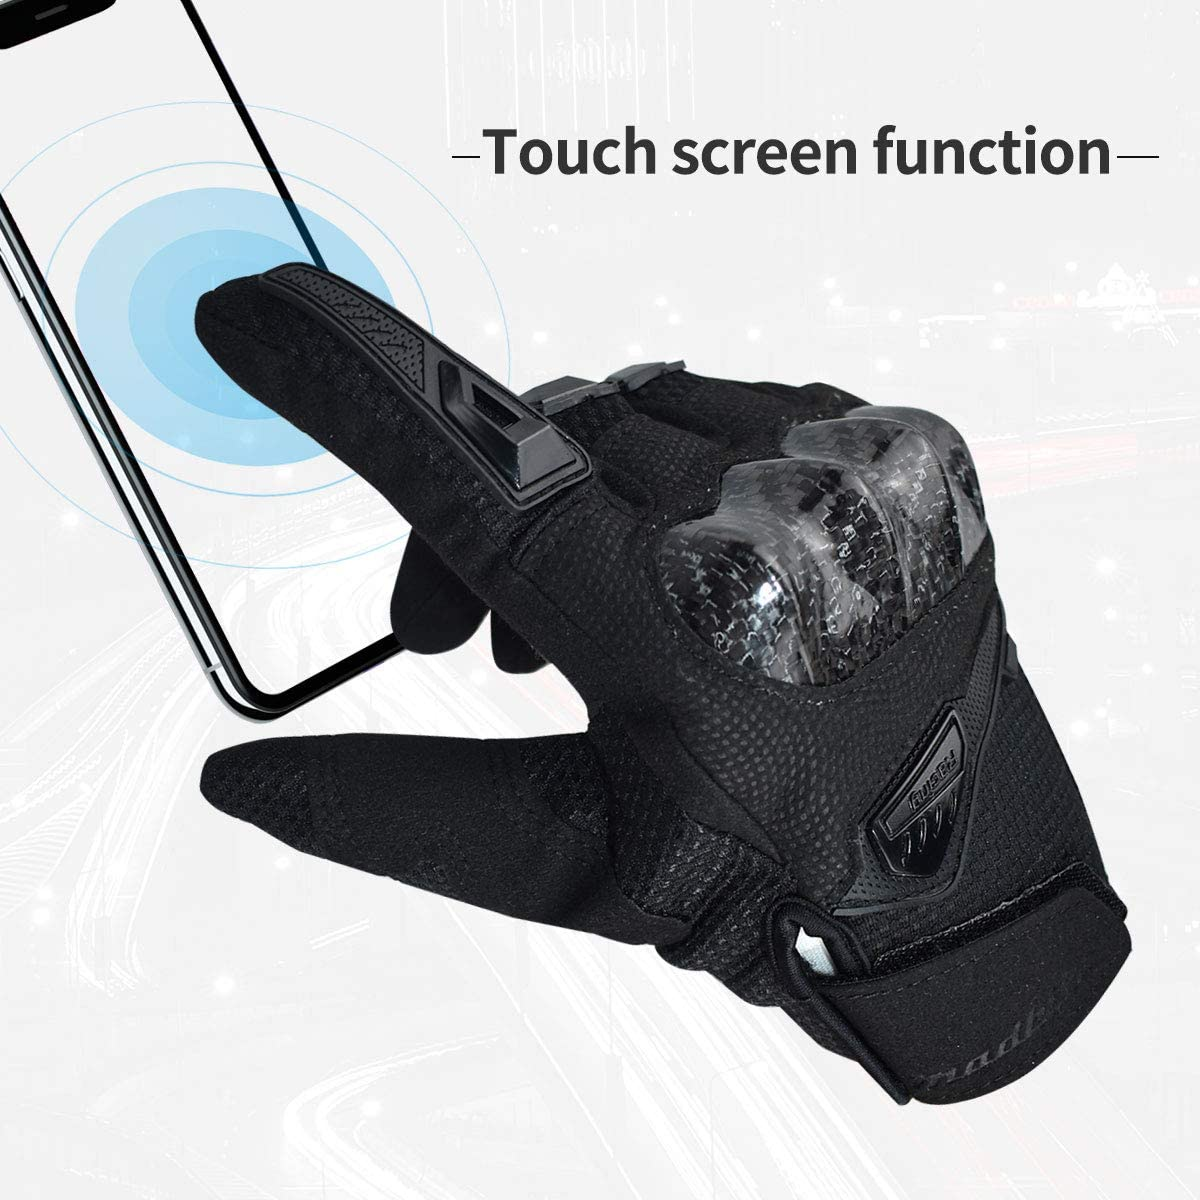 ELCYCO Touch Screen Motorcycle Riding Gloves for Men Summer Motorbike Powersports Racing Gloves Black, XL